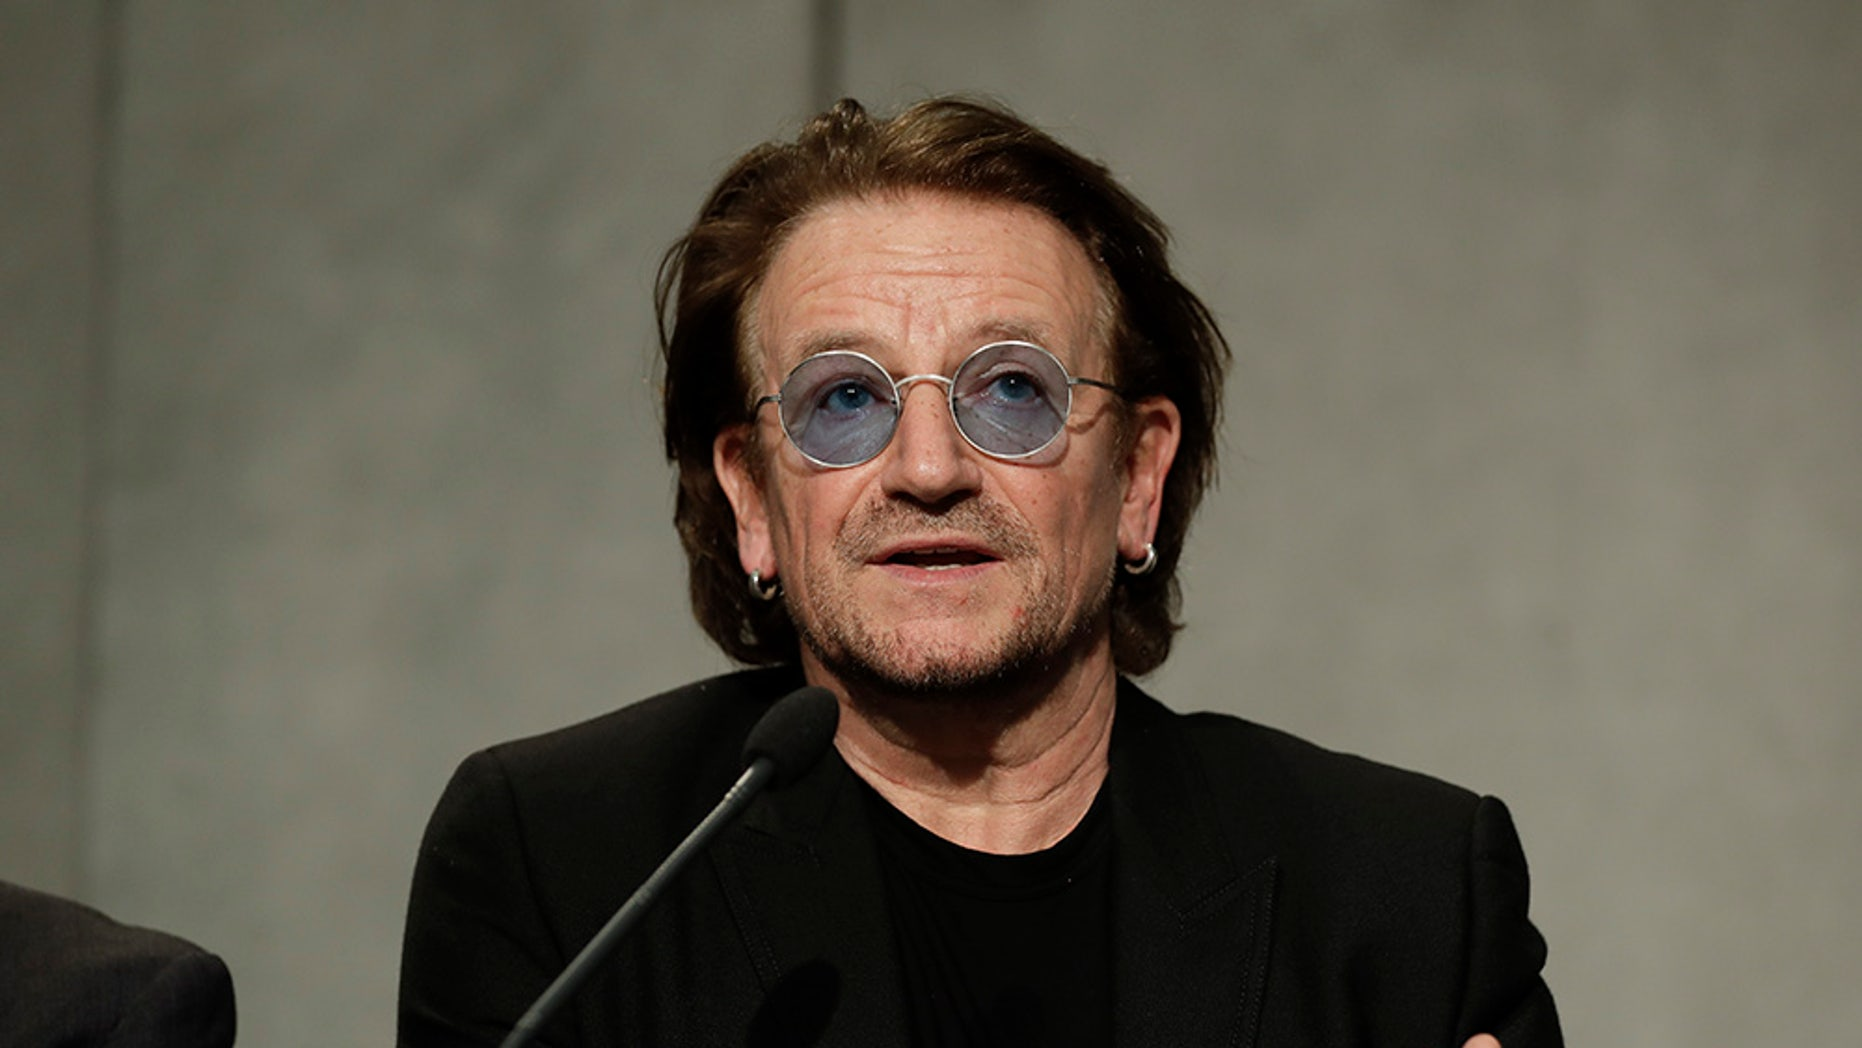 U2 rock band frontman Bono Vox talks to reporters during a press conference he held at the end of a meeting with Pope Francis, at the Vatican, Wednesday, Sept. 19, 2018. (AP Photo/Andrew Medichini)